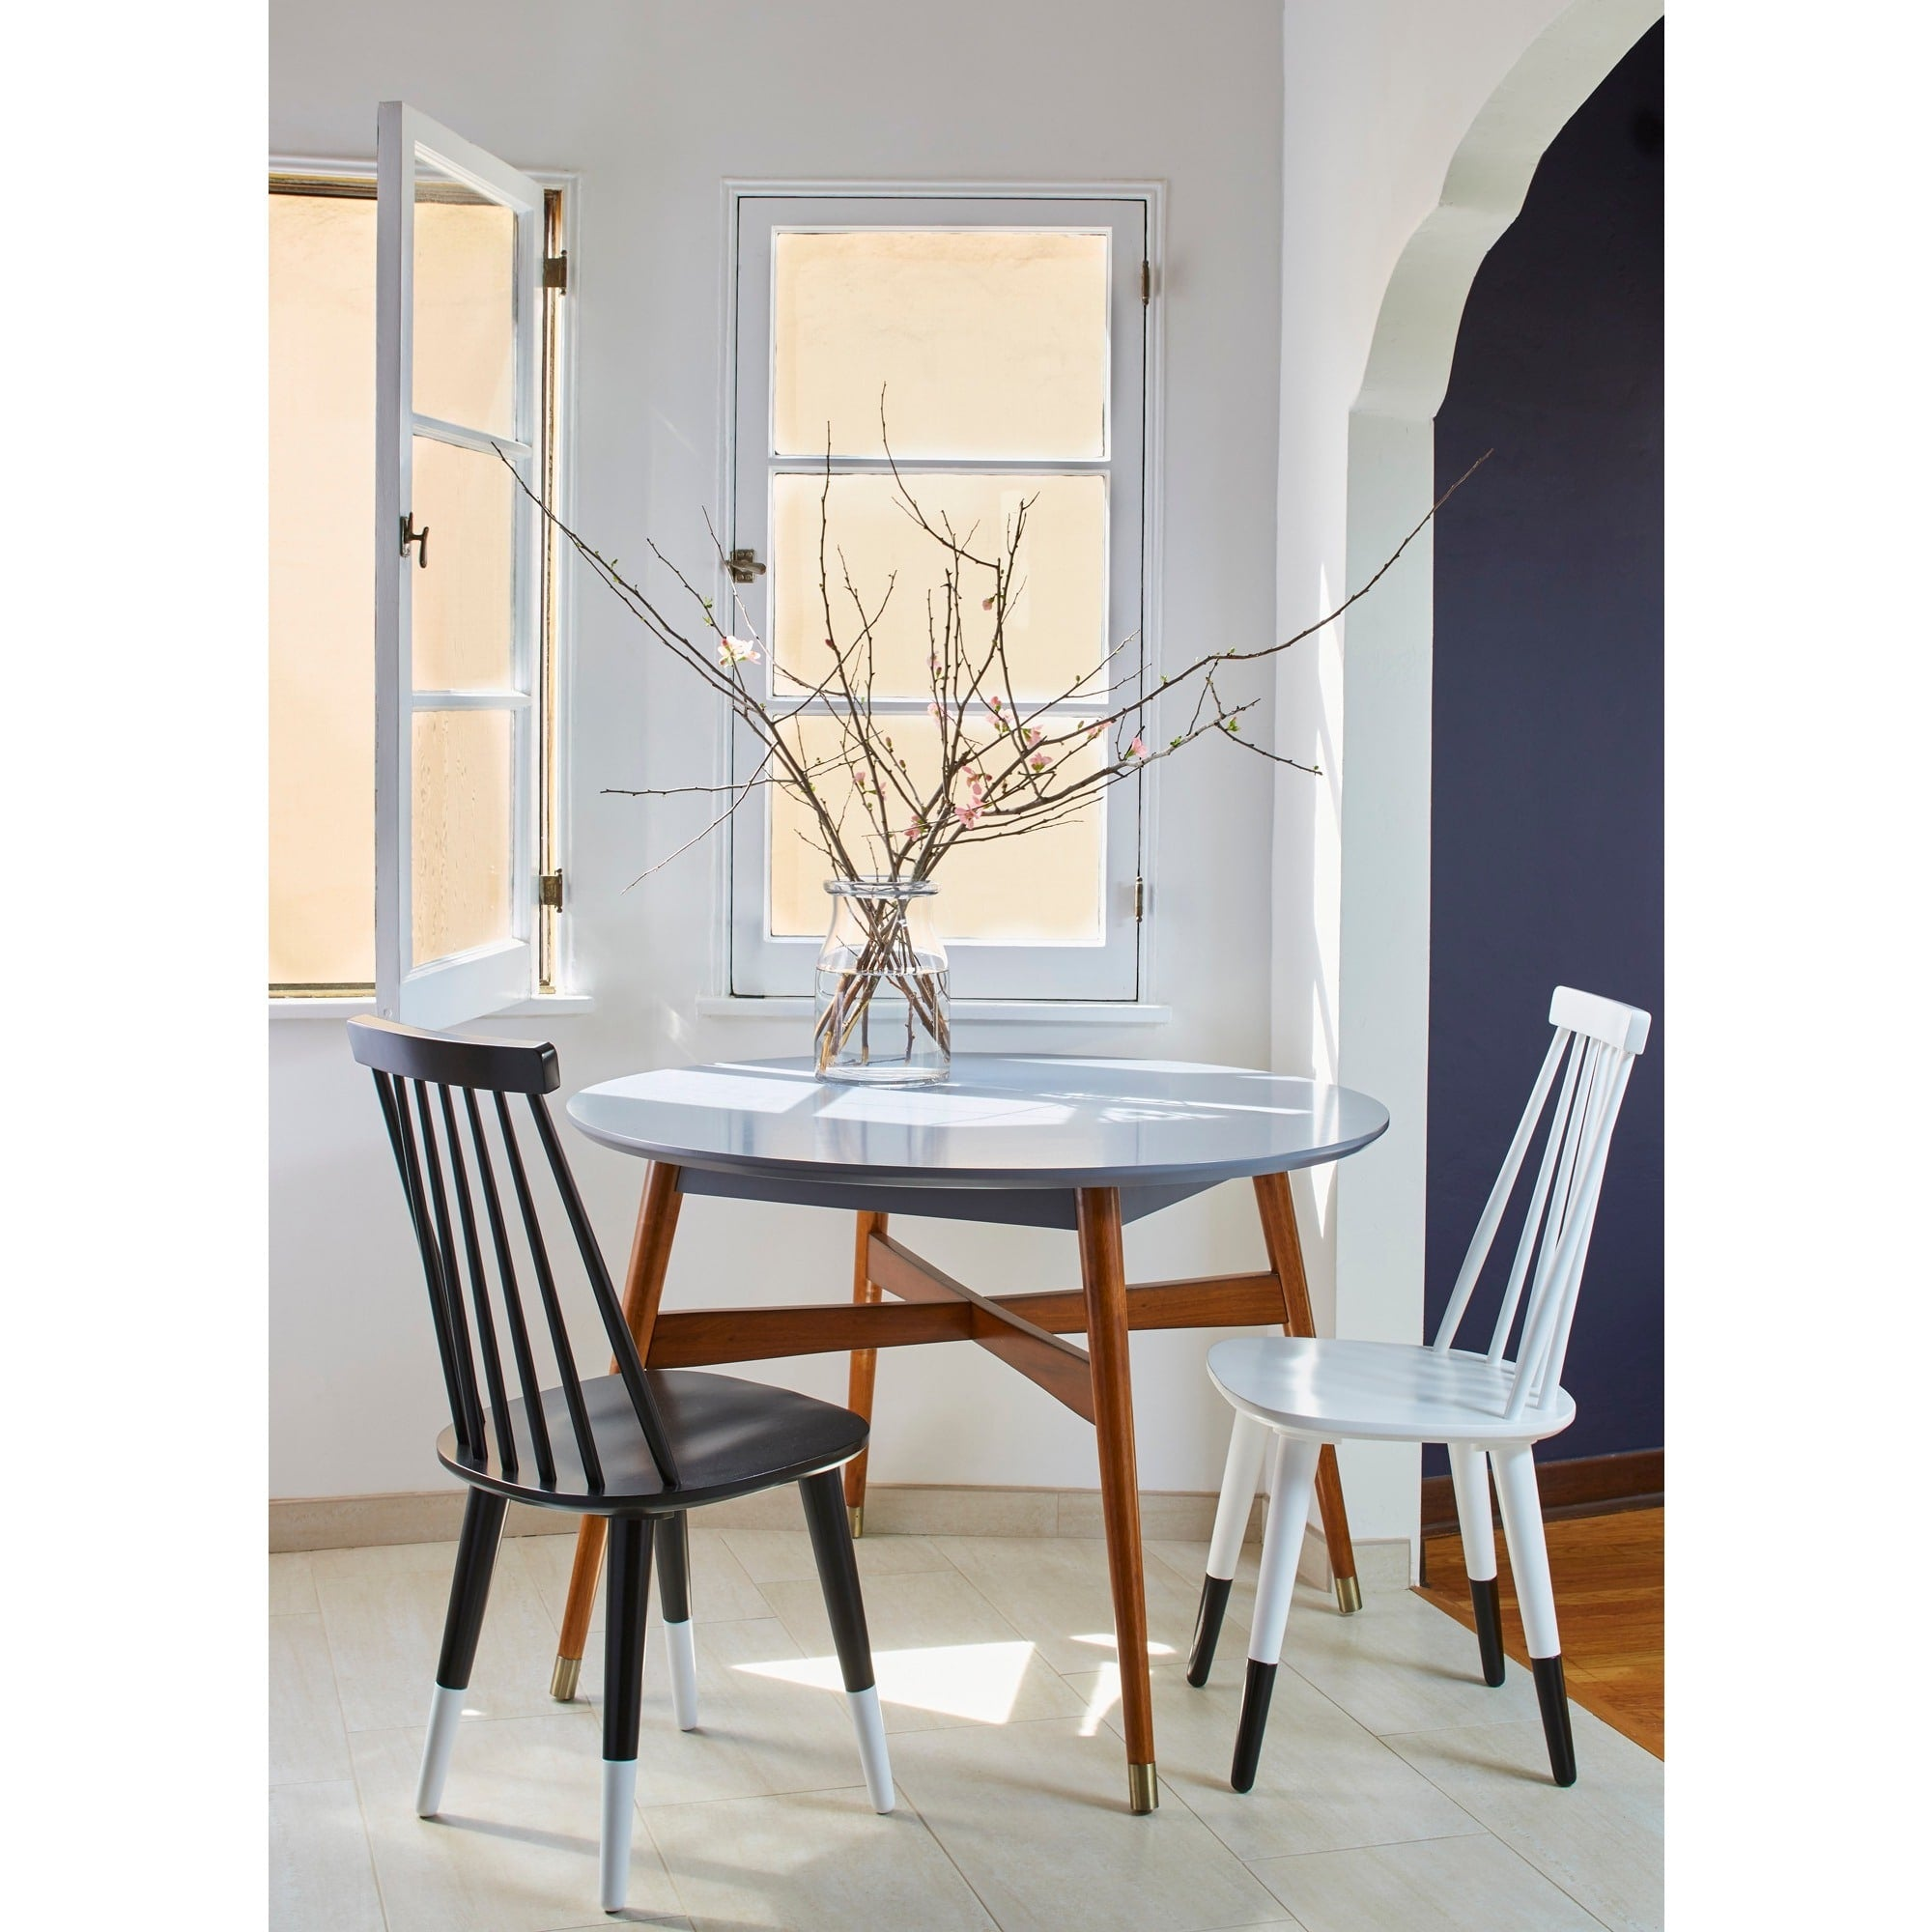 ... Angelo:HOME Wood Dining Chairs In Black (set Of 2)   Angelo: ...